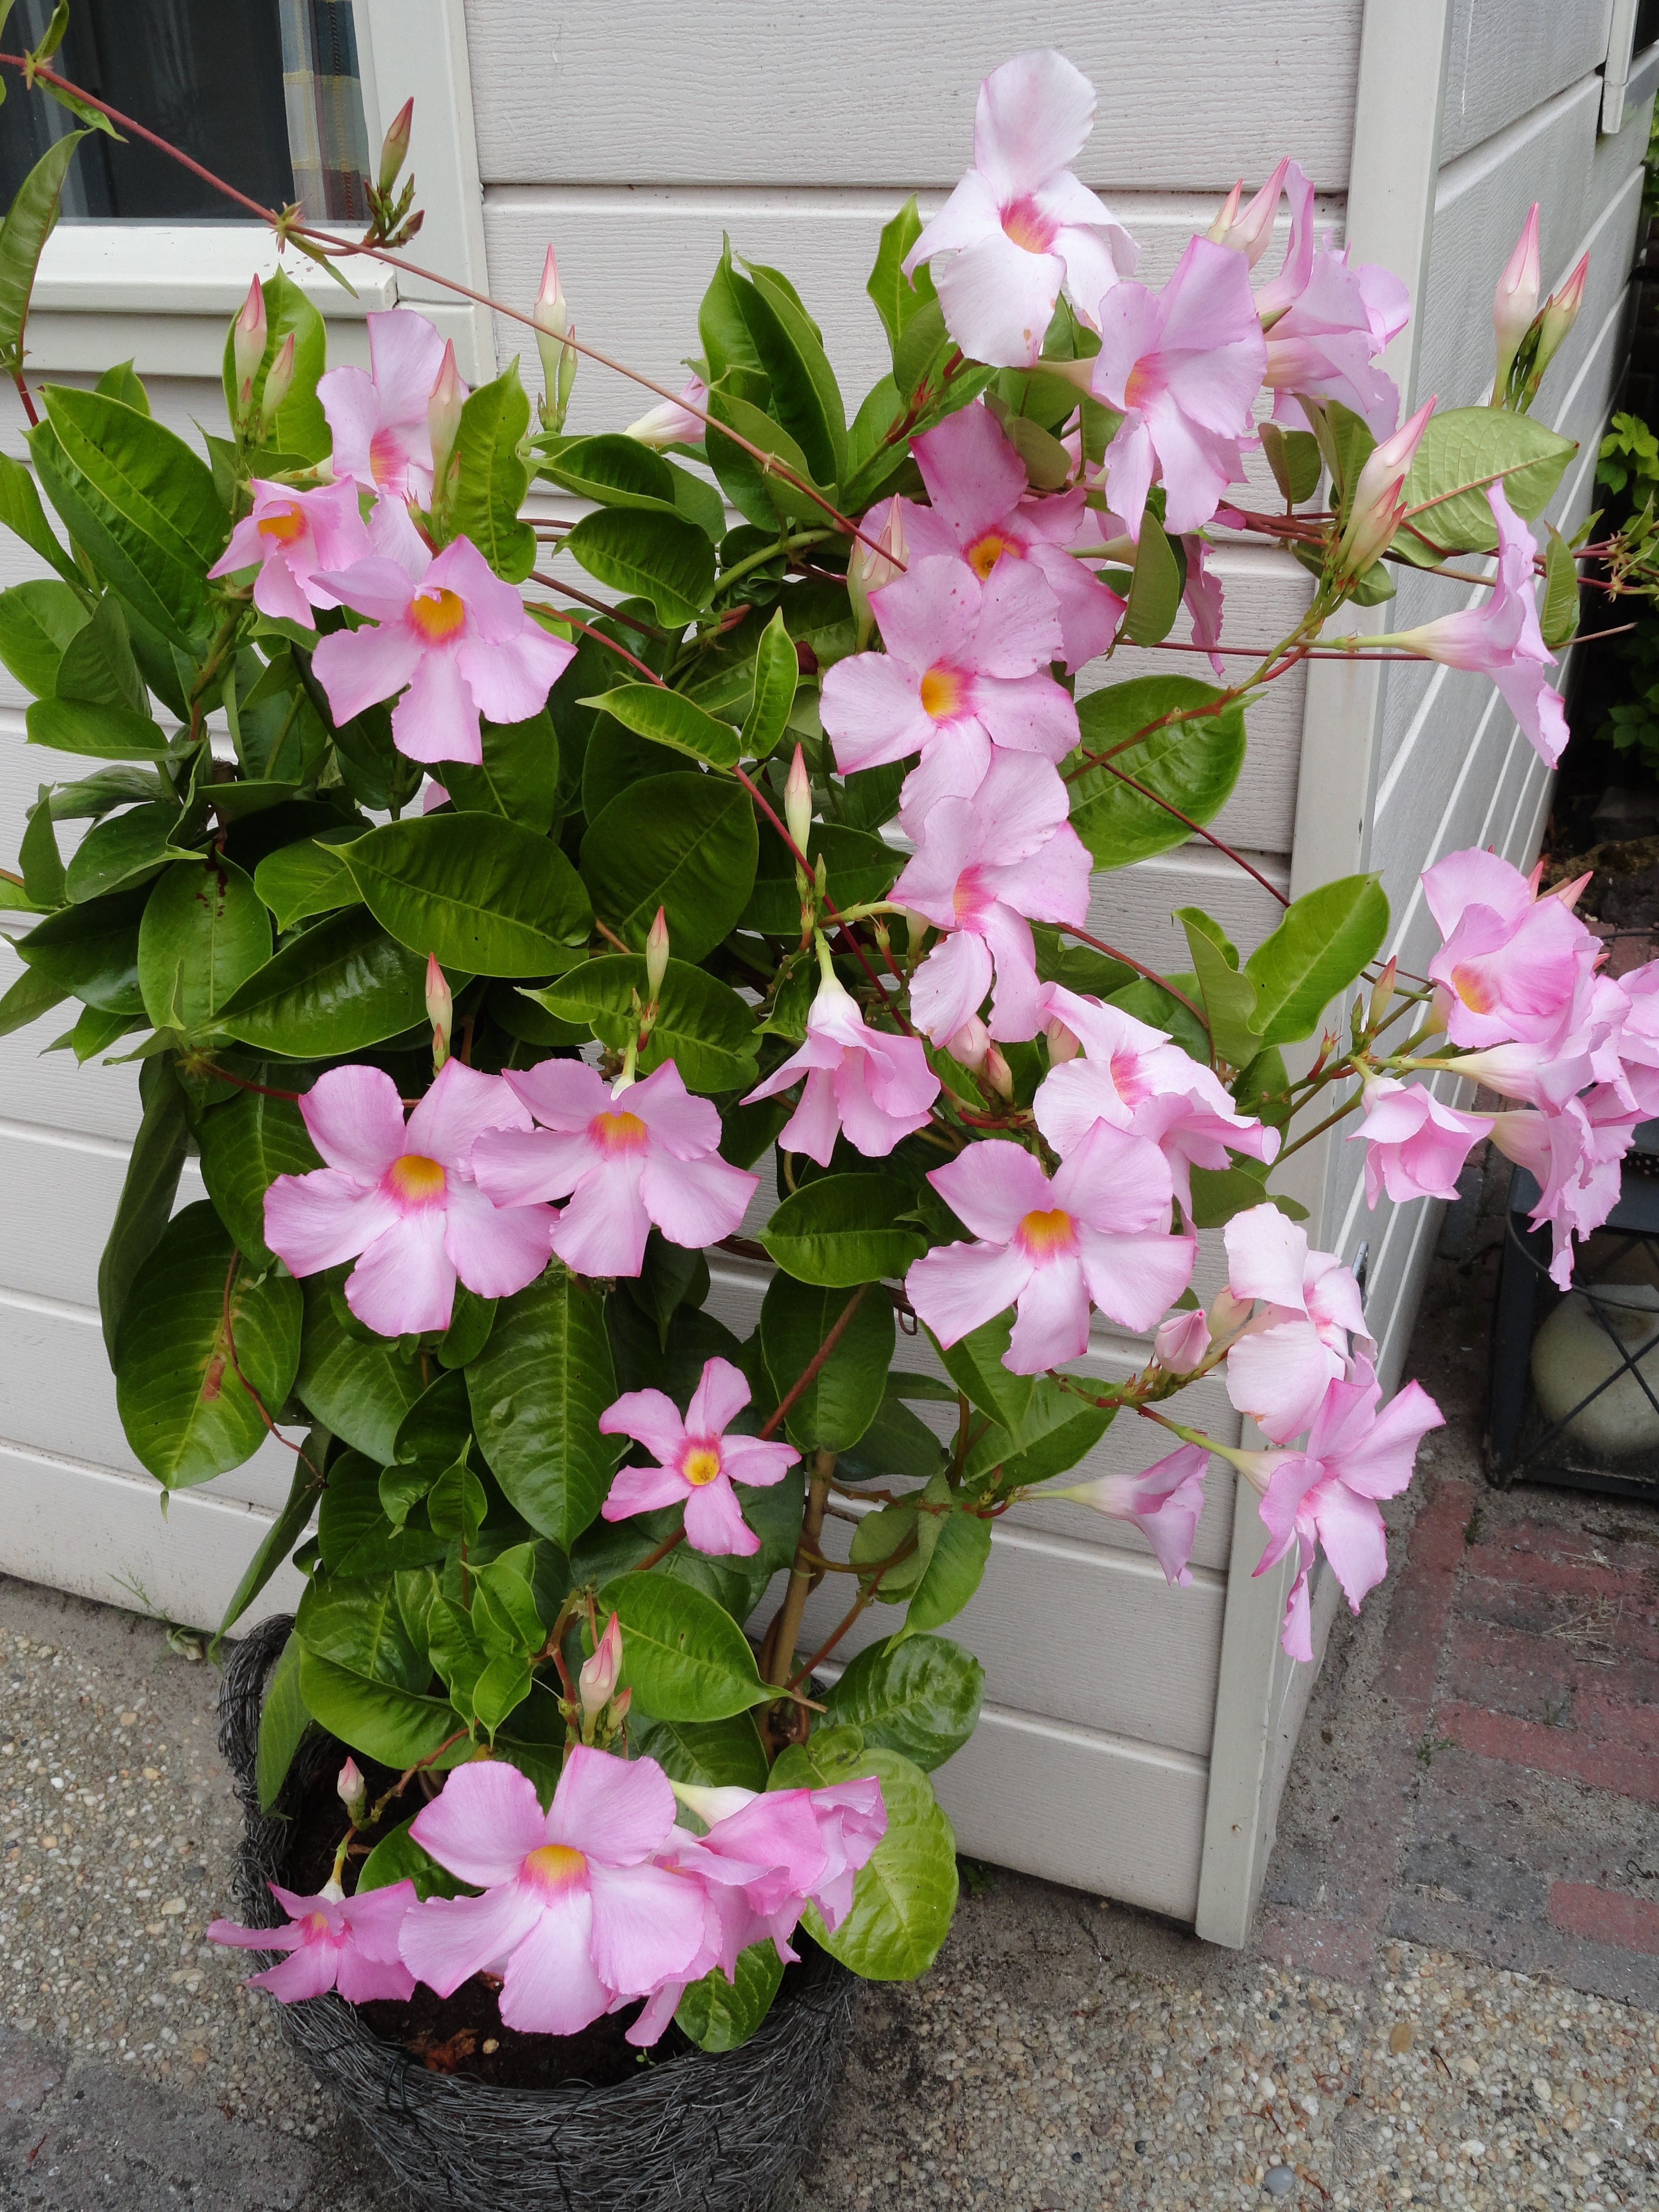 Dipladenia Dipladenia is in the Mandevilla family but has a decidedly different growth pattern Mandevilla